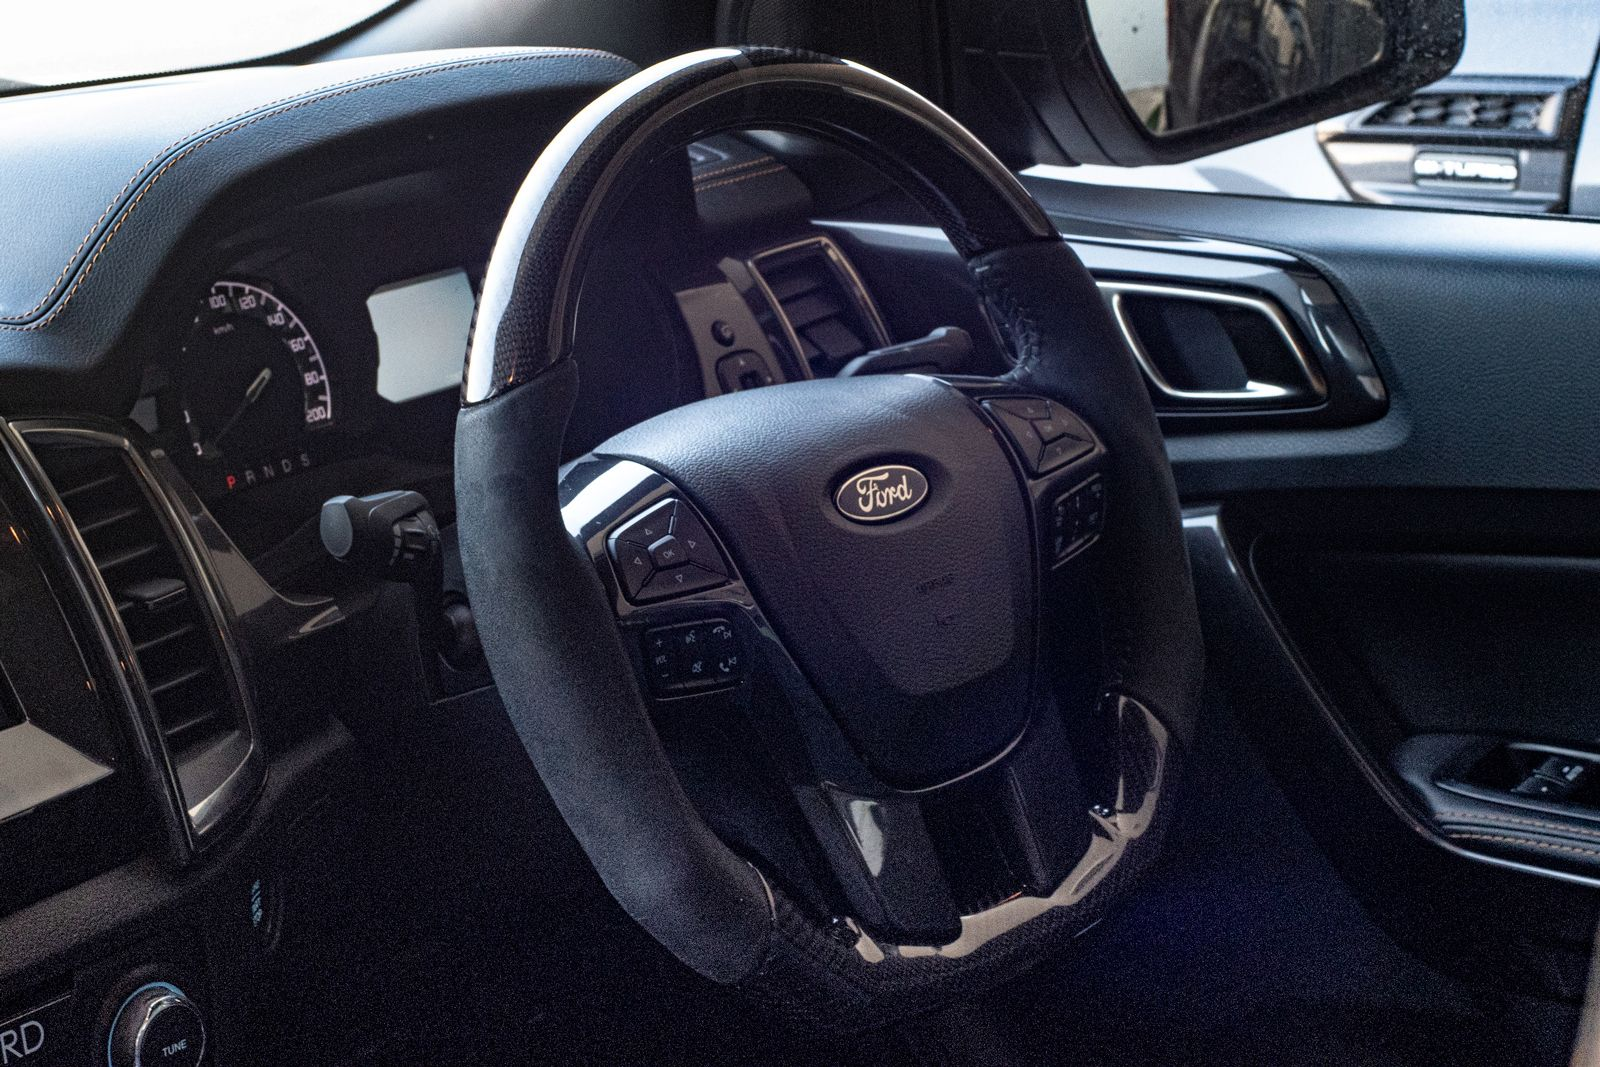 The New Tickford Flat Bottom Sports Steering Wheel Perfectly Compliments Your Ford Ranger Providing Greater Confidence Ford Ranger Performance Driving Ranger